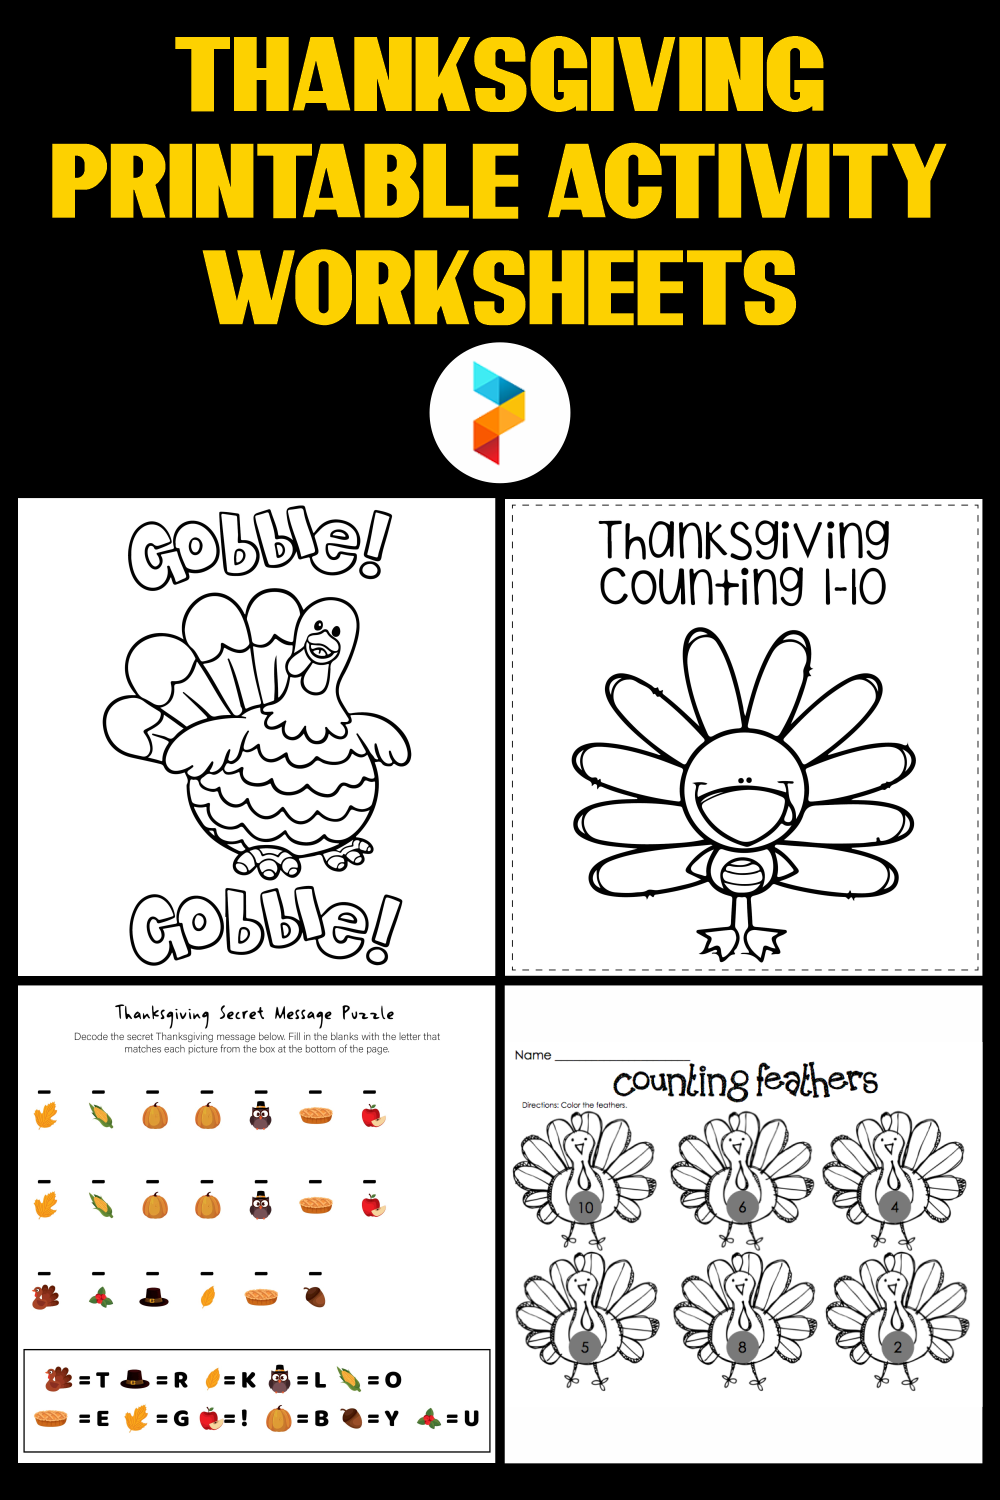 Thanksgiving Printable Activity Worksheets